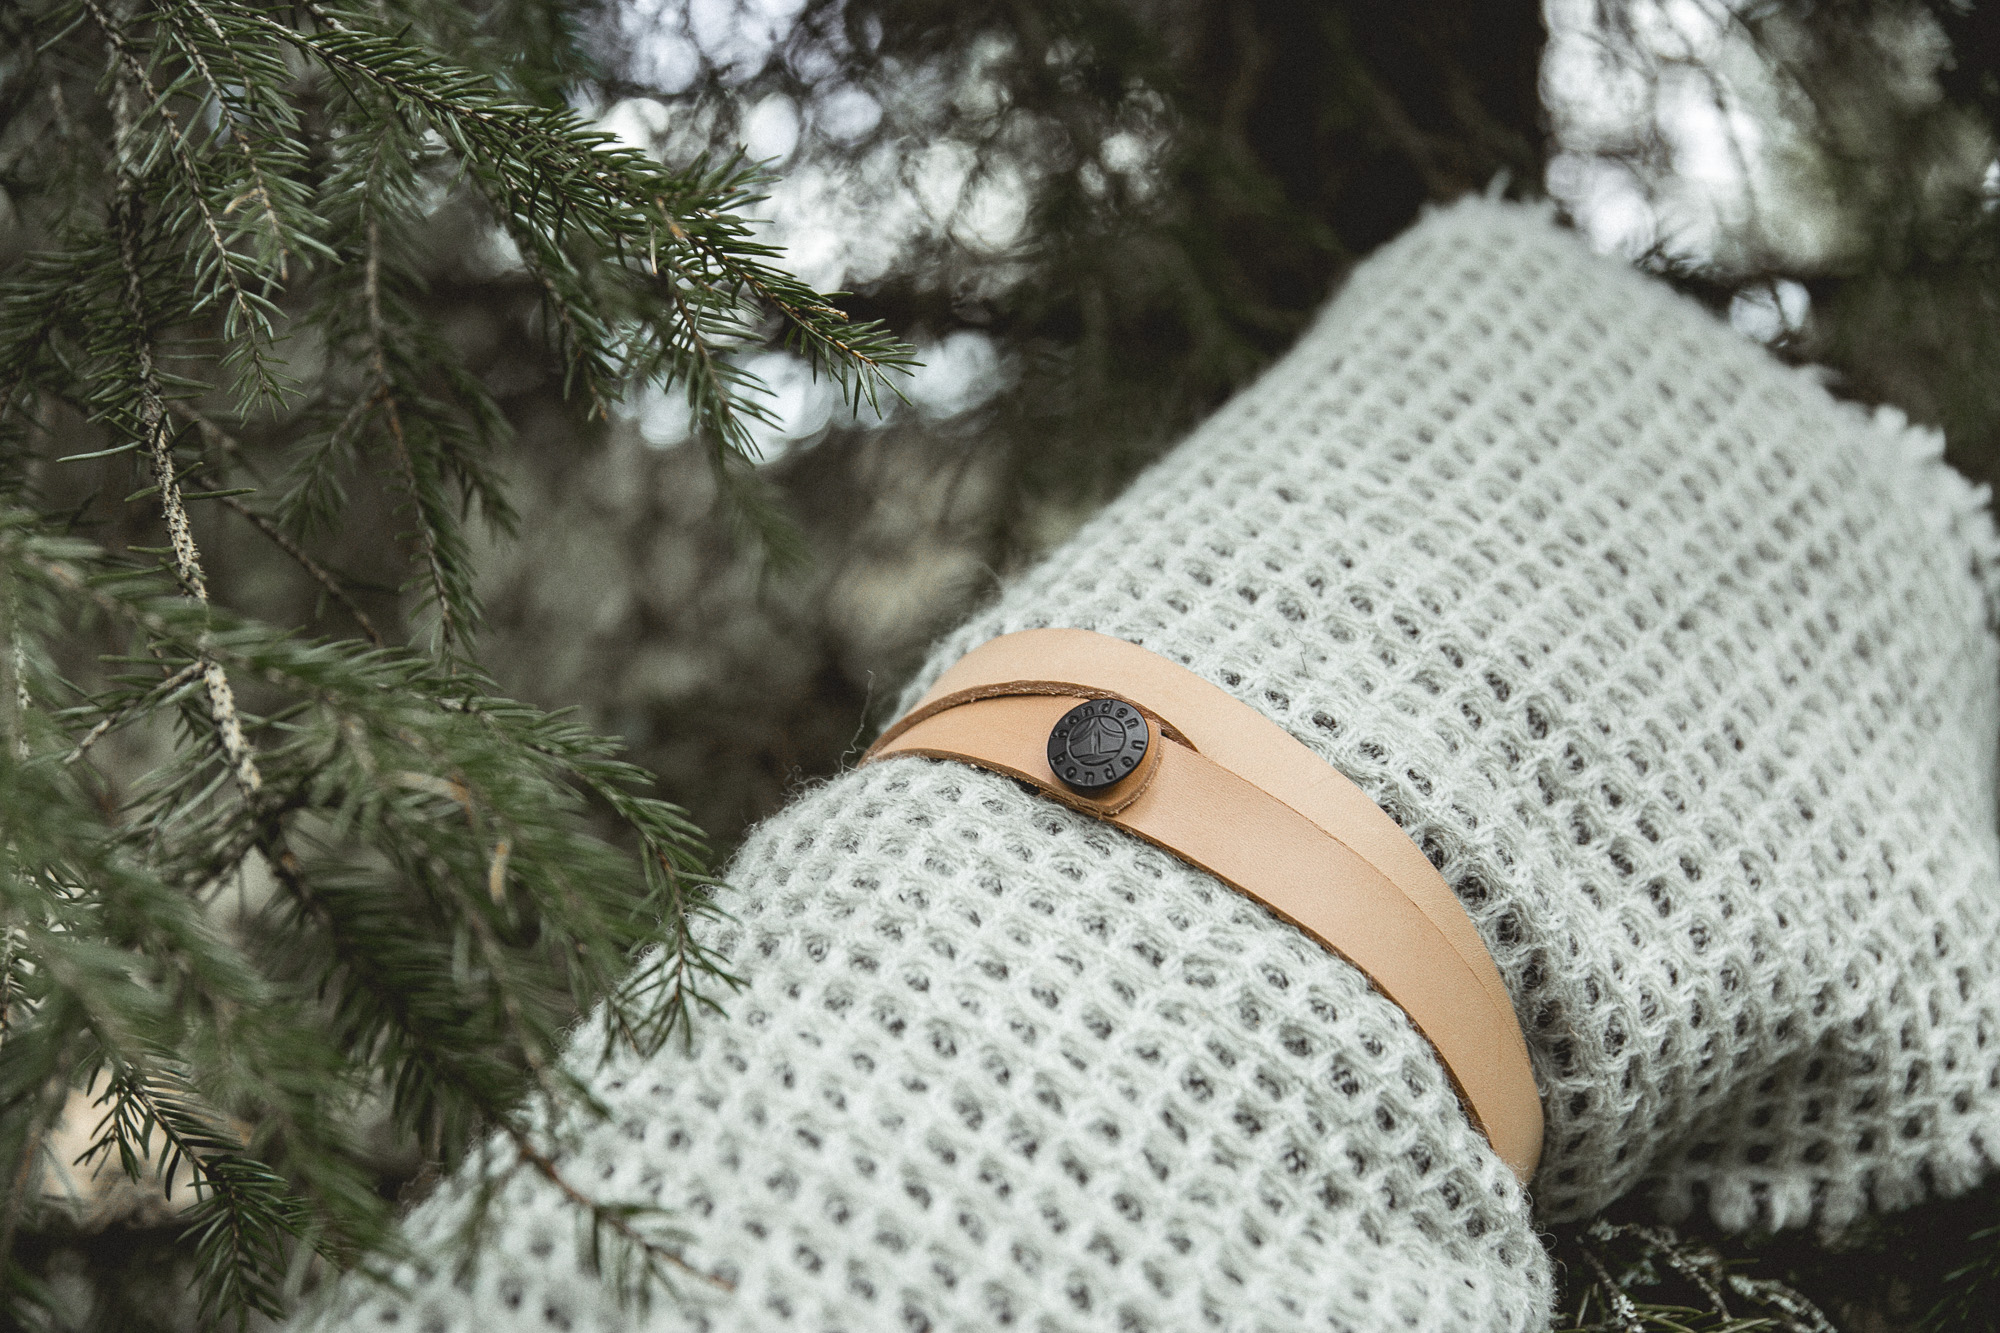 Thais FK X Bonden Living – A Sustainable Nordic Brand on The Adagio Blog